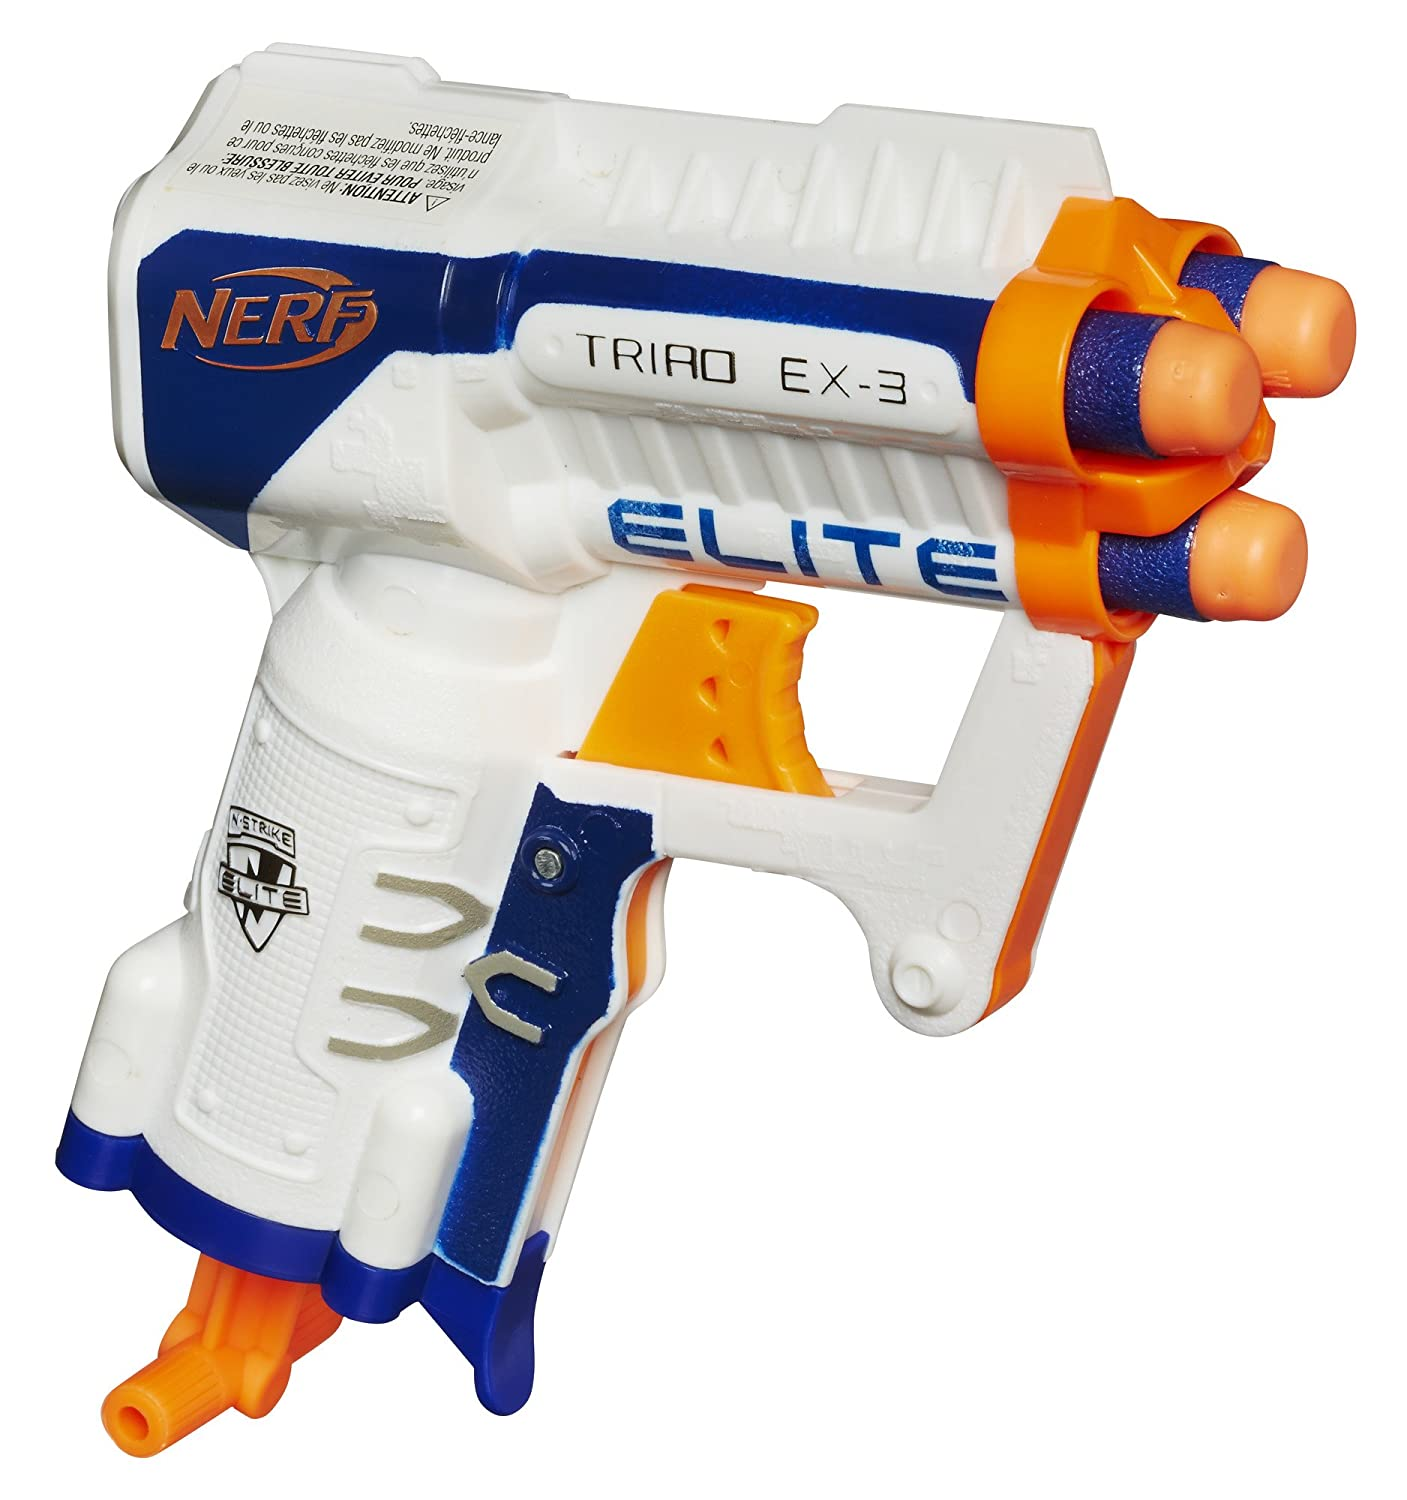 NERF N-Strike Elite Triad EX-3 Toy